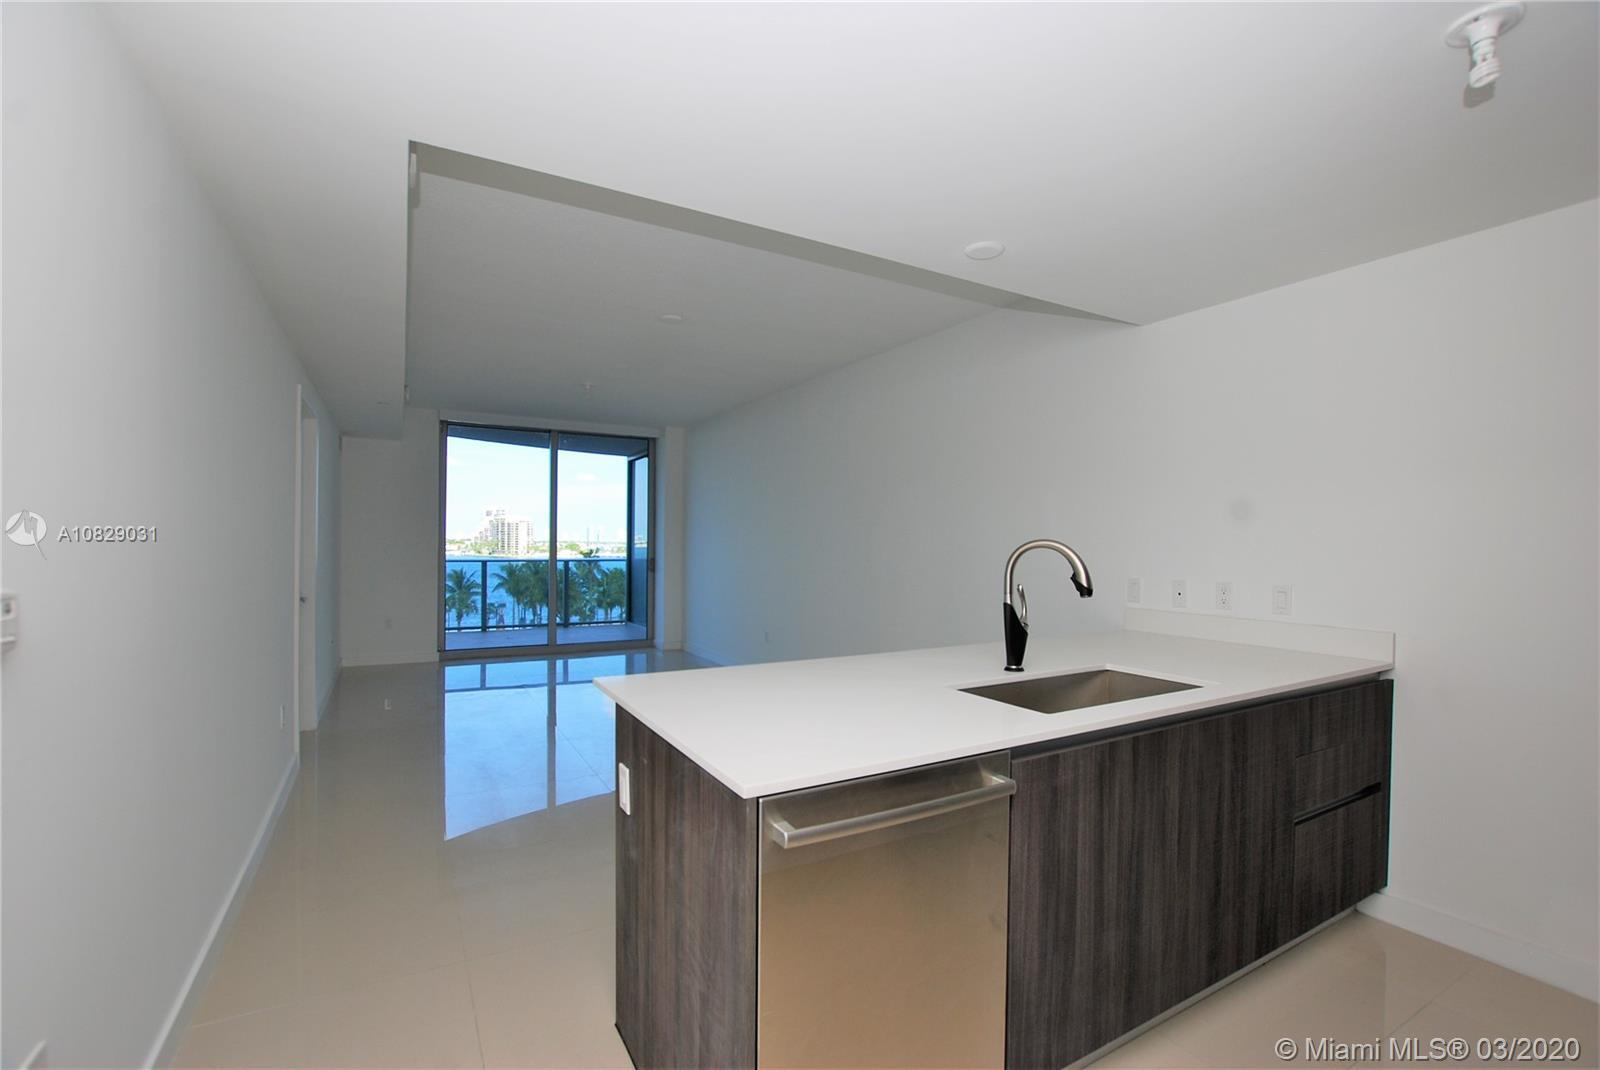 This spectacular 1bed/1.5bath unit is one of the very units in Aria on the Bay with 100% direct bay